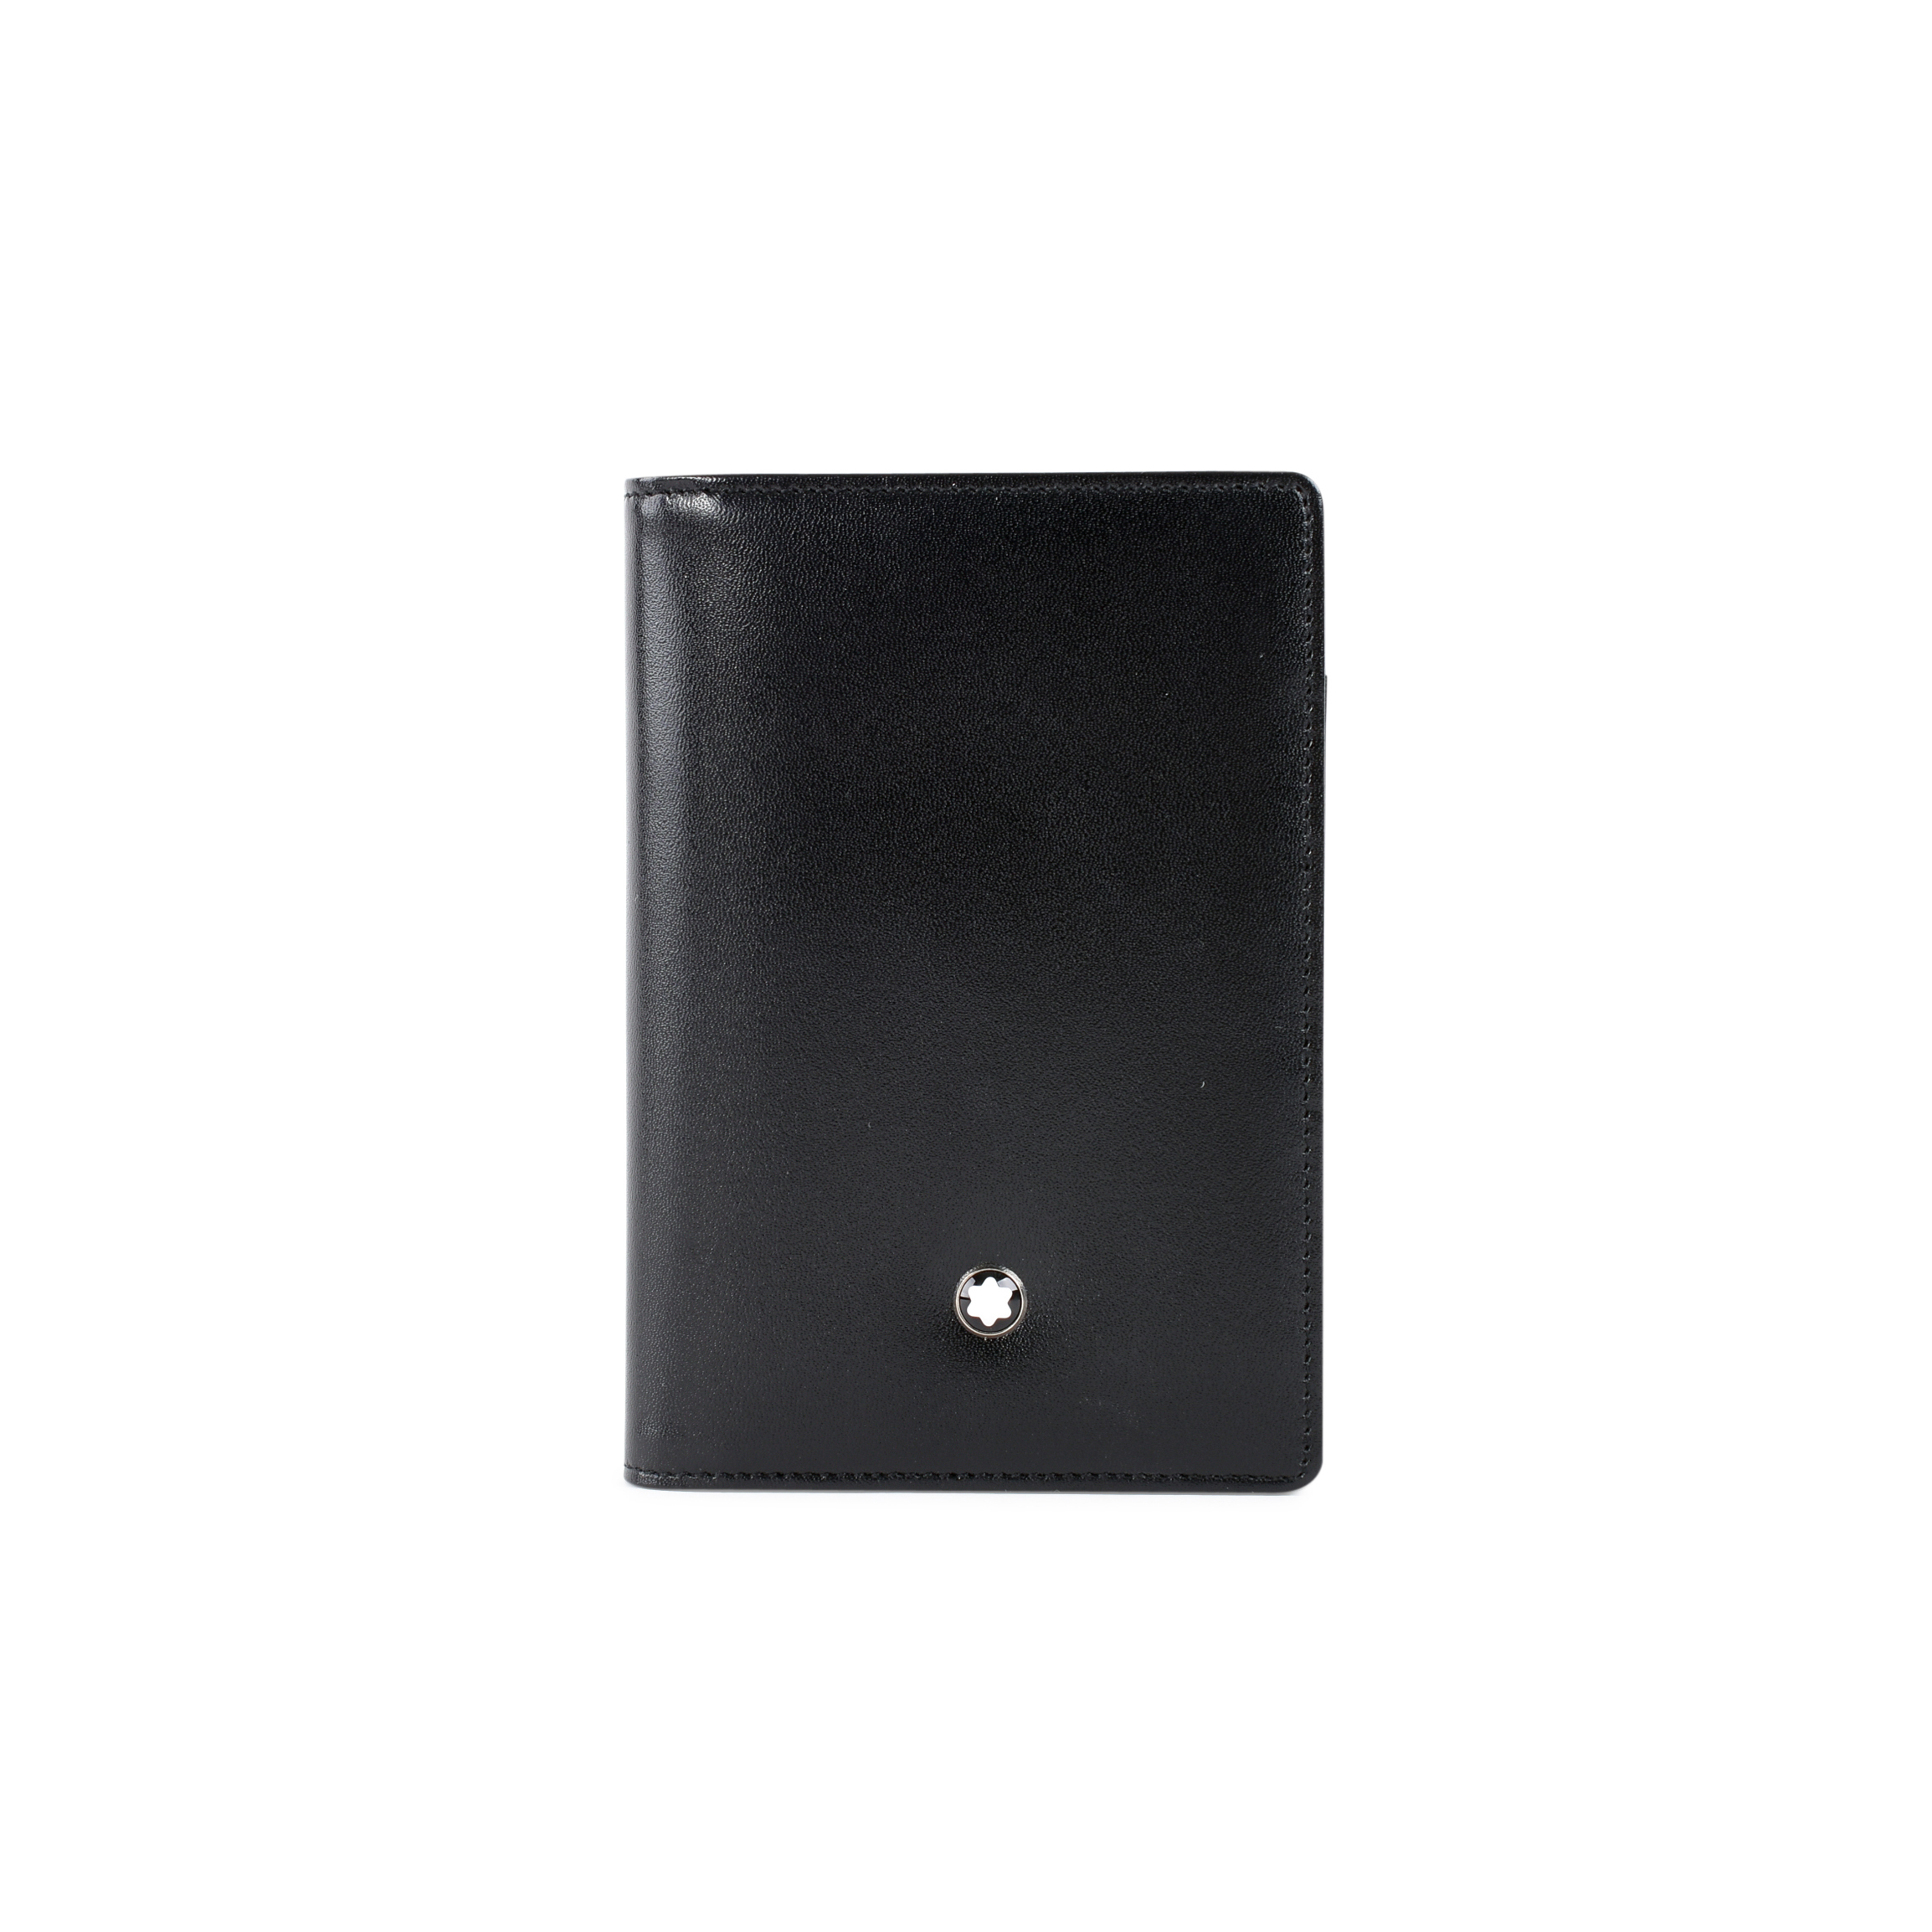 Second Hand Mont Blanc Business Cardholder | THE FIFTH COLLECTION